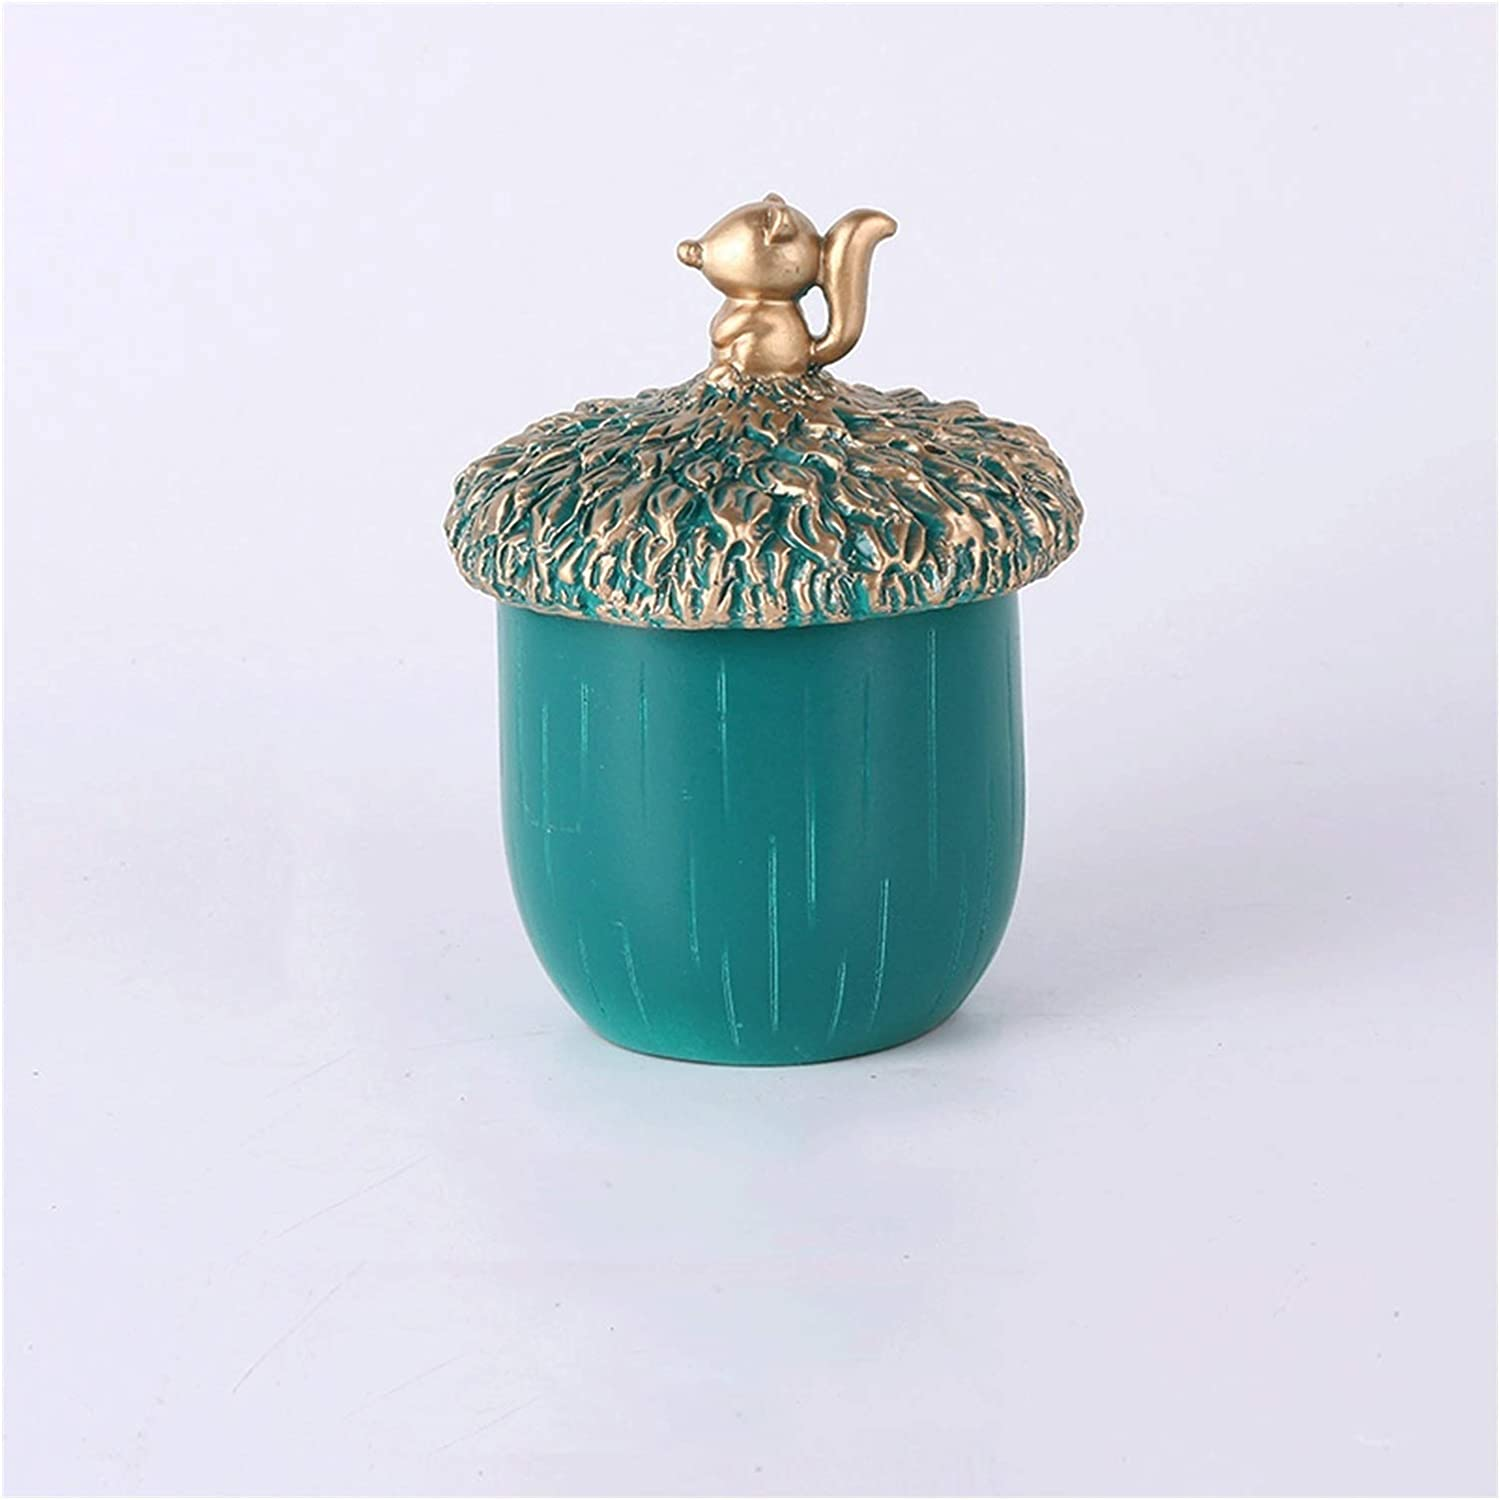 YUXI8541NO Ashtray Creative with Home Selling Manufacturer direct delivery lid Personality Li